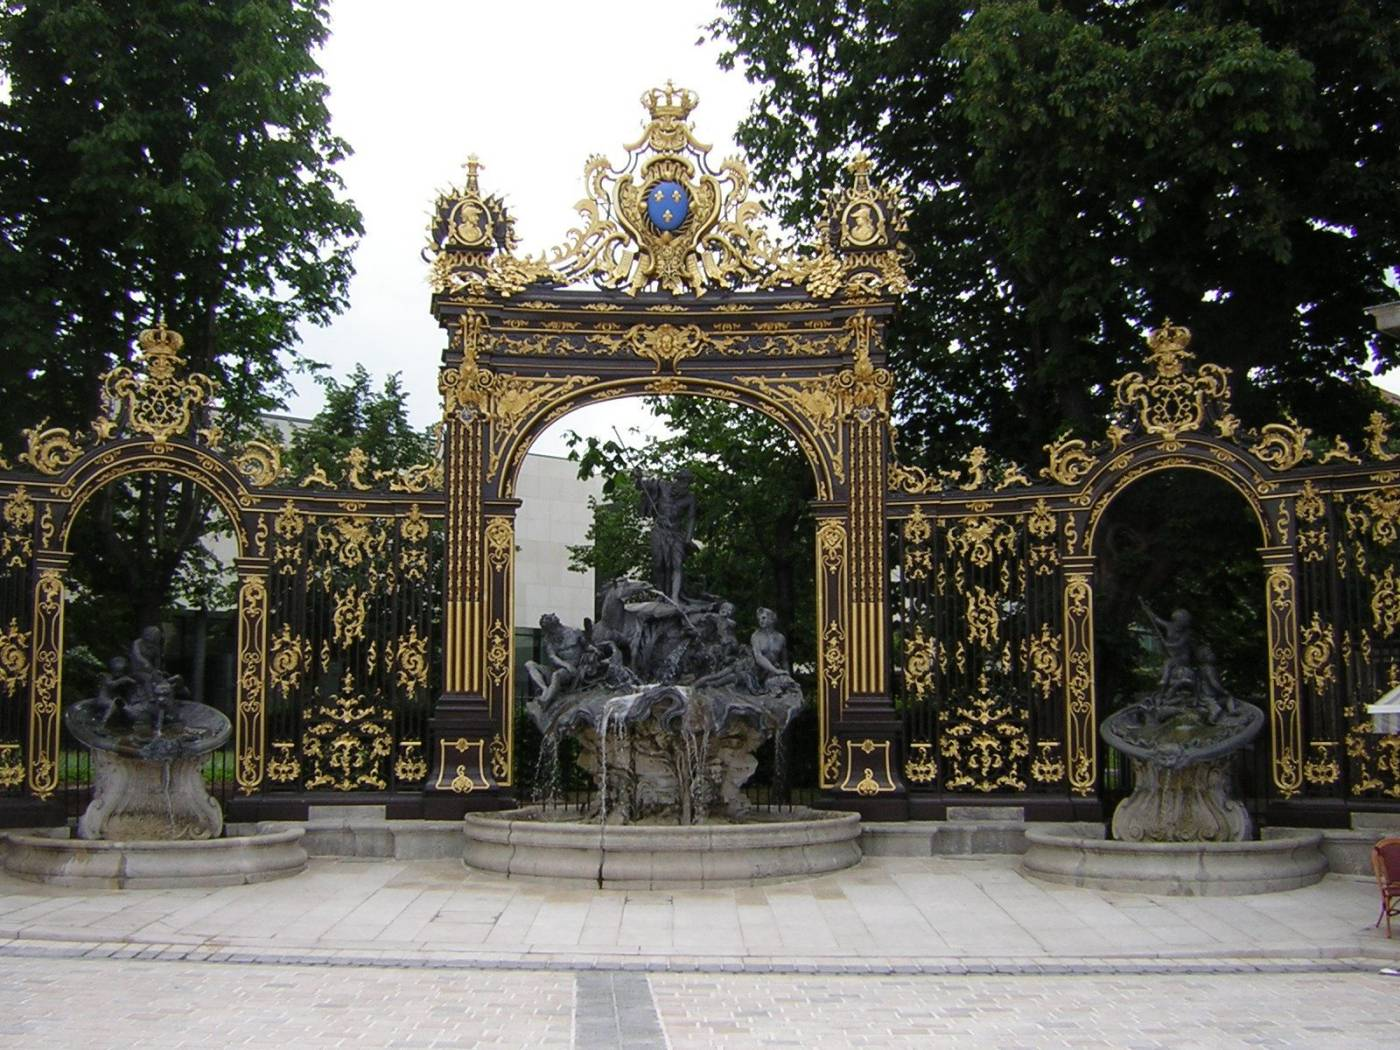 Nancy - Fontaine Neptune